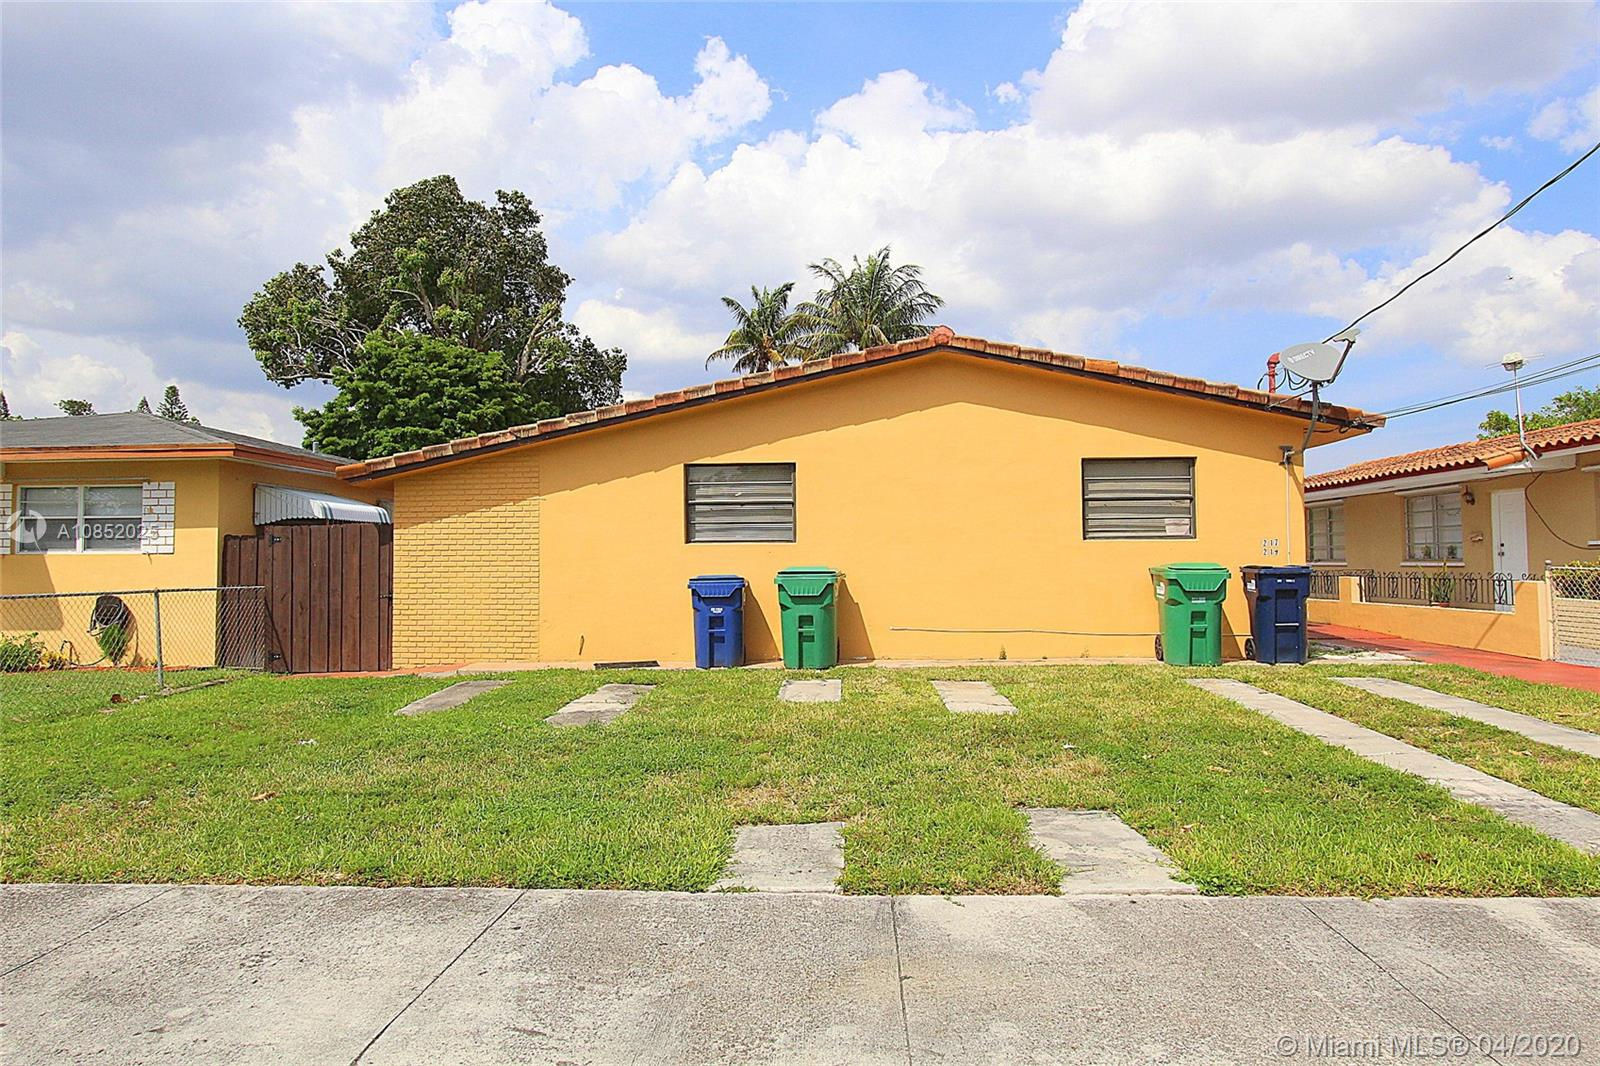 Unbeatable location with easy access to expressways, large retail centers and schools. One of the best rental markets in the area. Large units with good layout. Barrel tile roof and some updates completed. Non-conforming triplex use on duplex zoning. Please complete your due diligence.